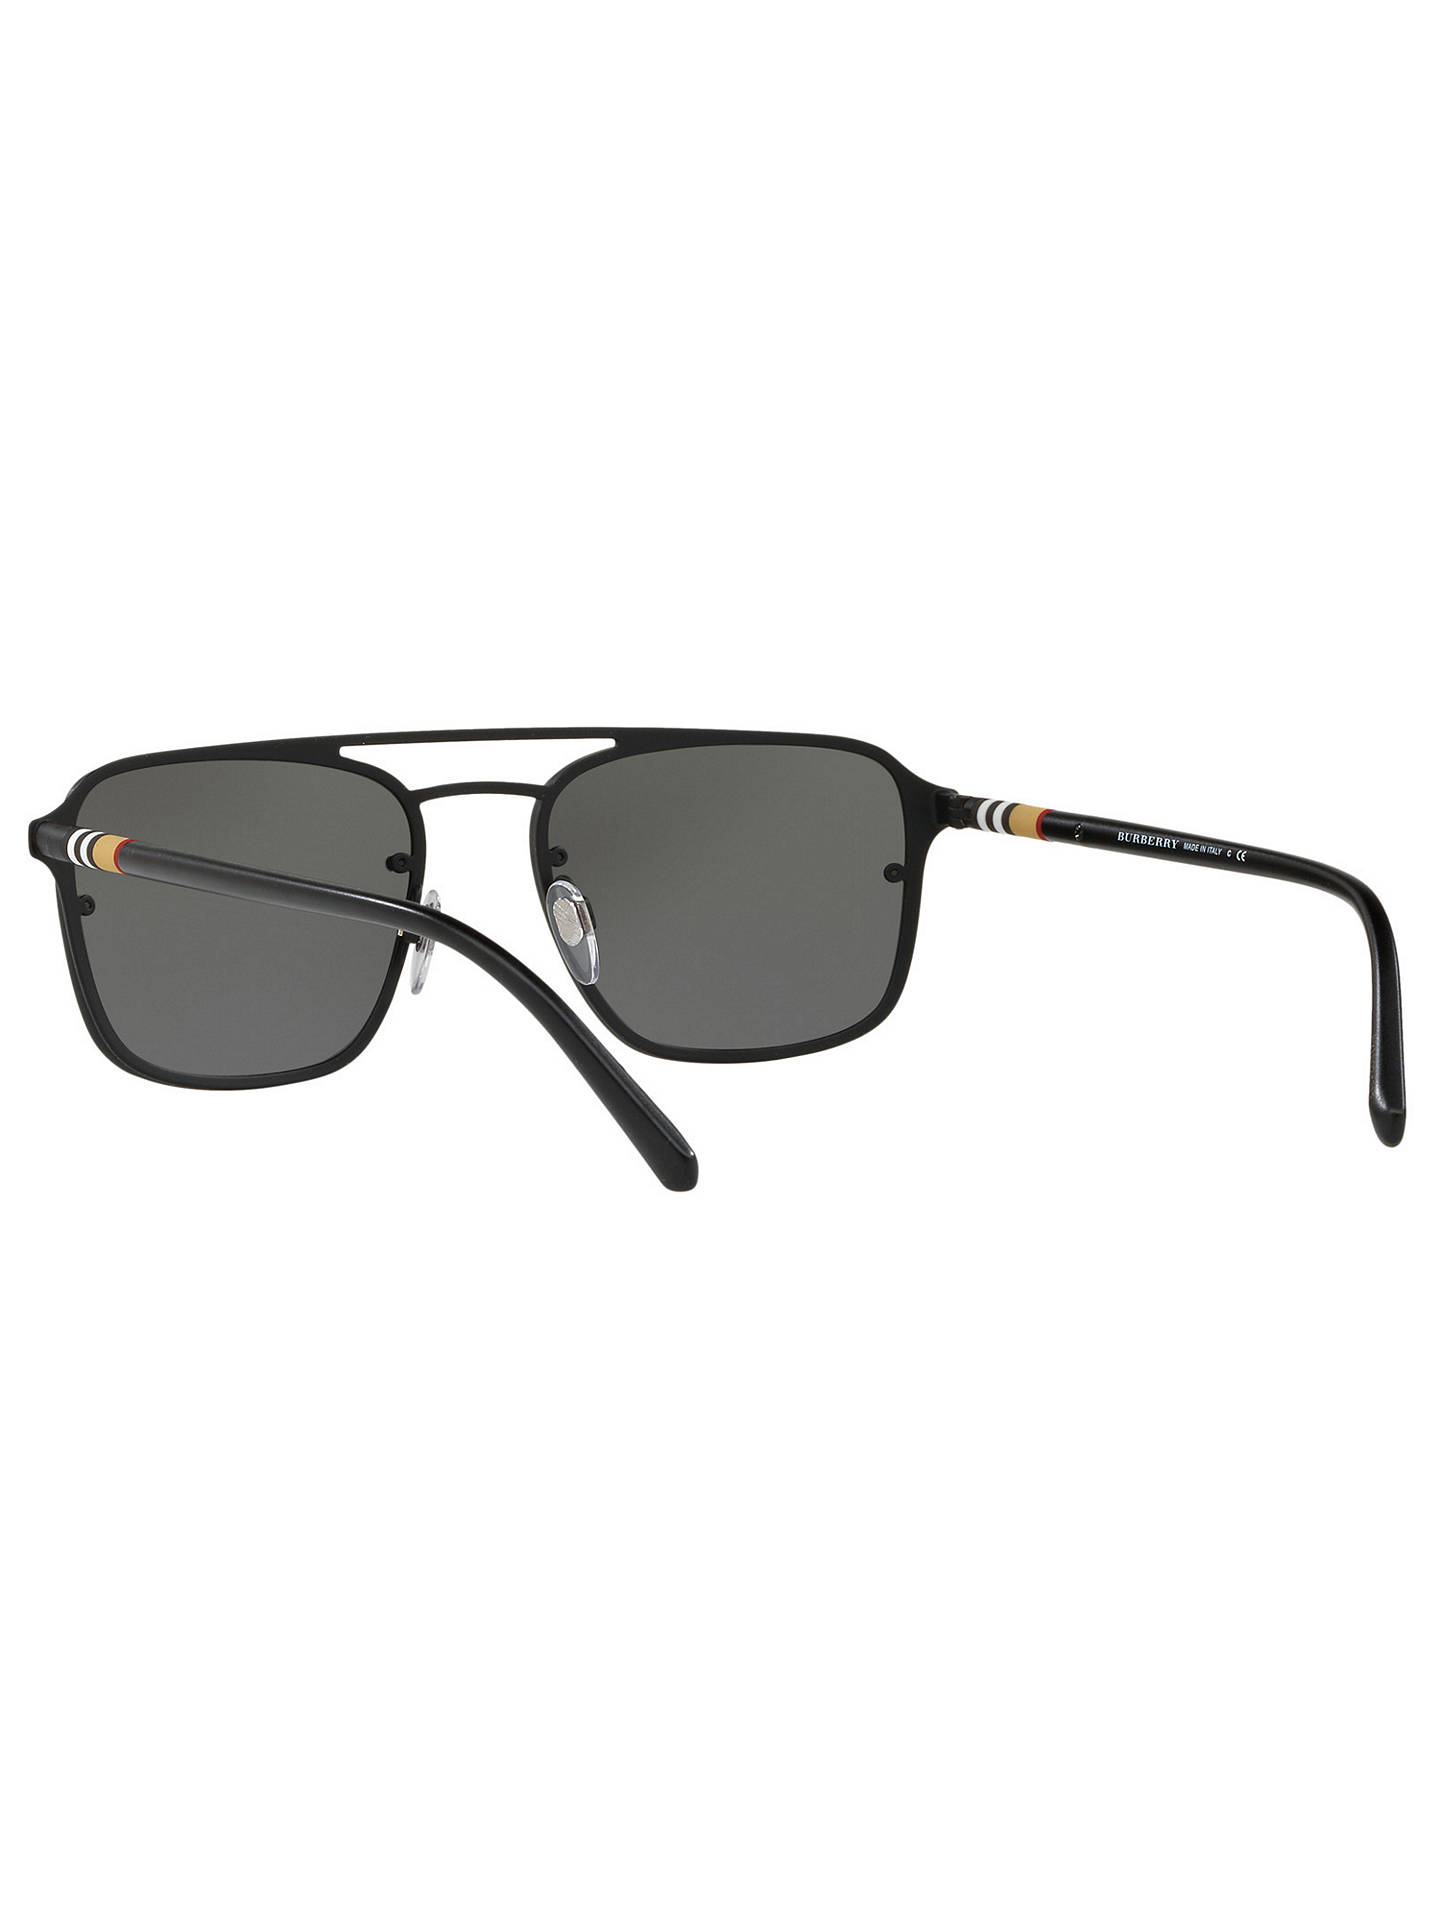 BuyBurberry BE3095 Men's Square Sunglasses, Black/Mirror Grey Online at johnlewis.com